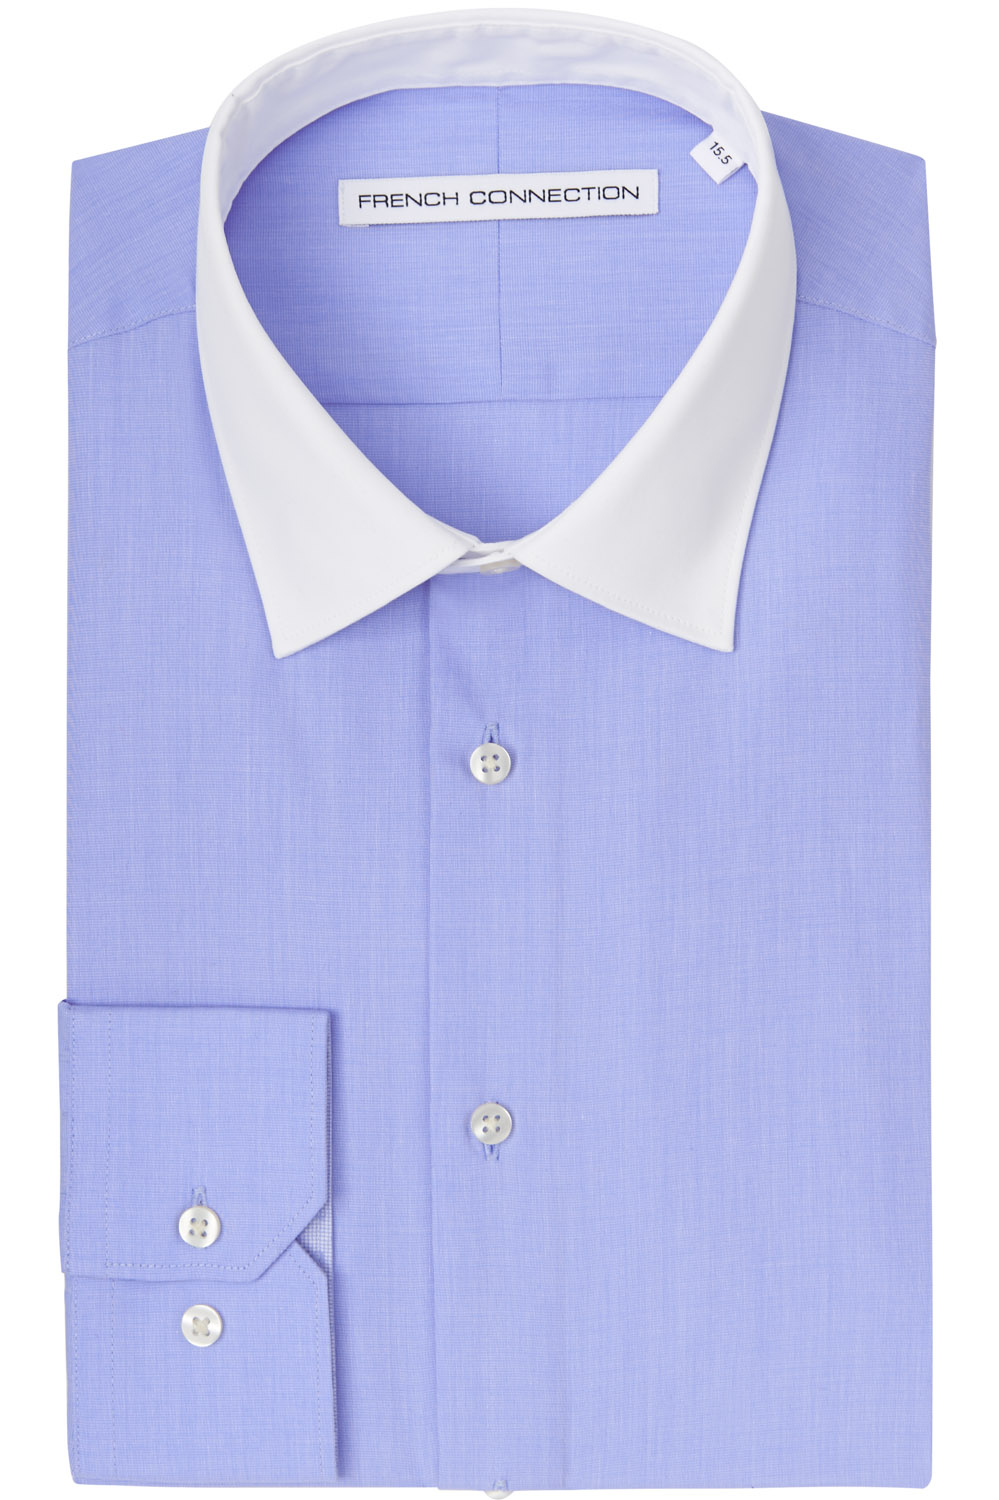 French connection slim fit sky blue single cuff white White french cuff shirt slim fit